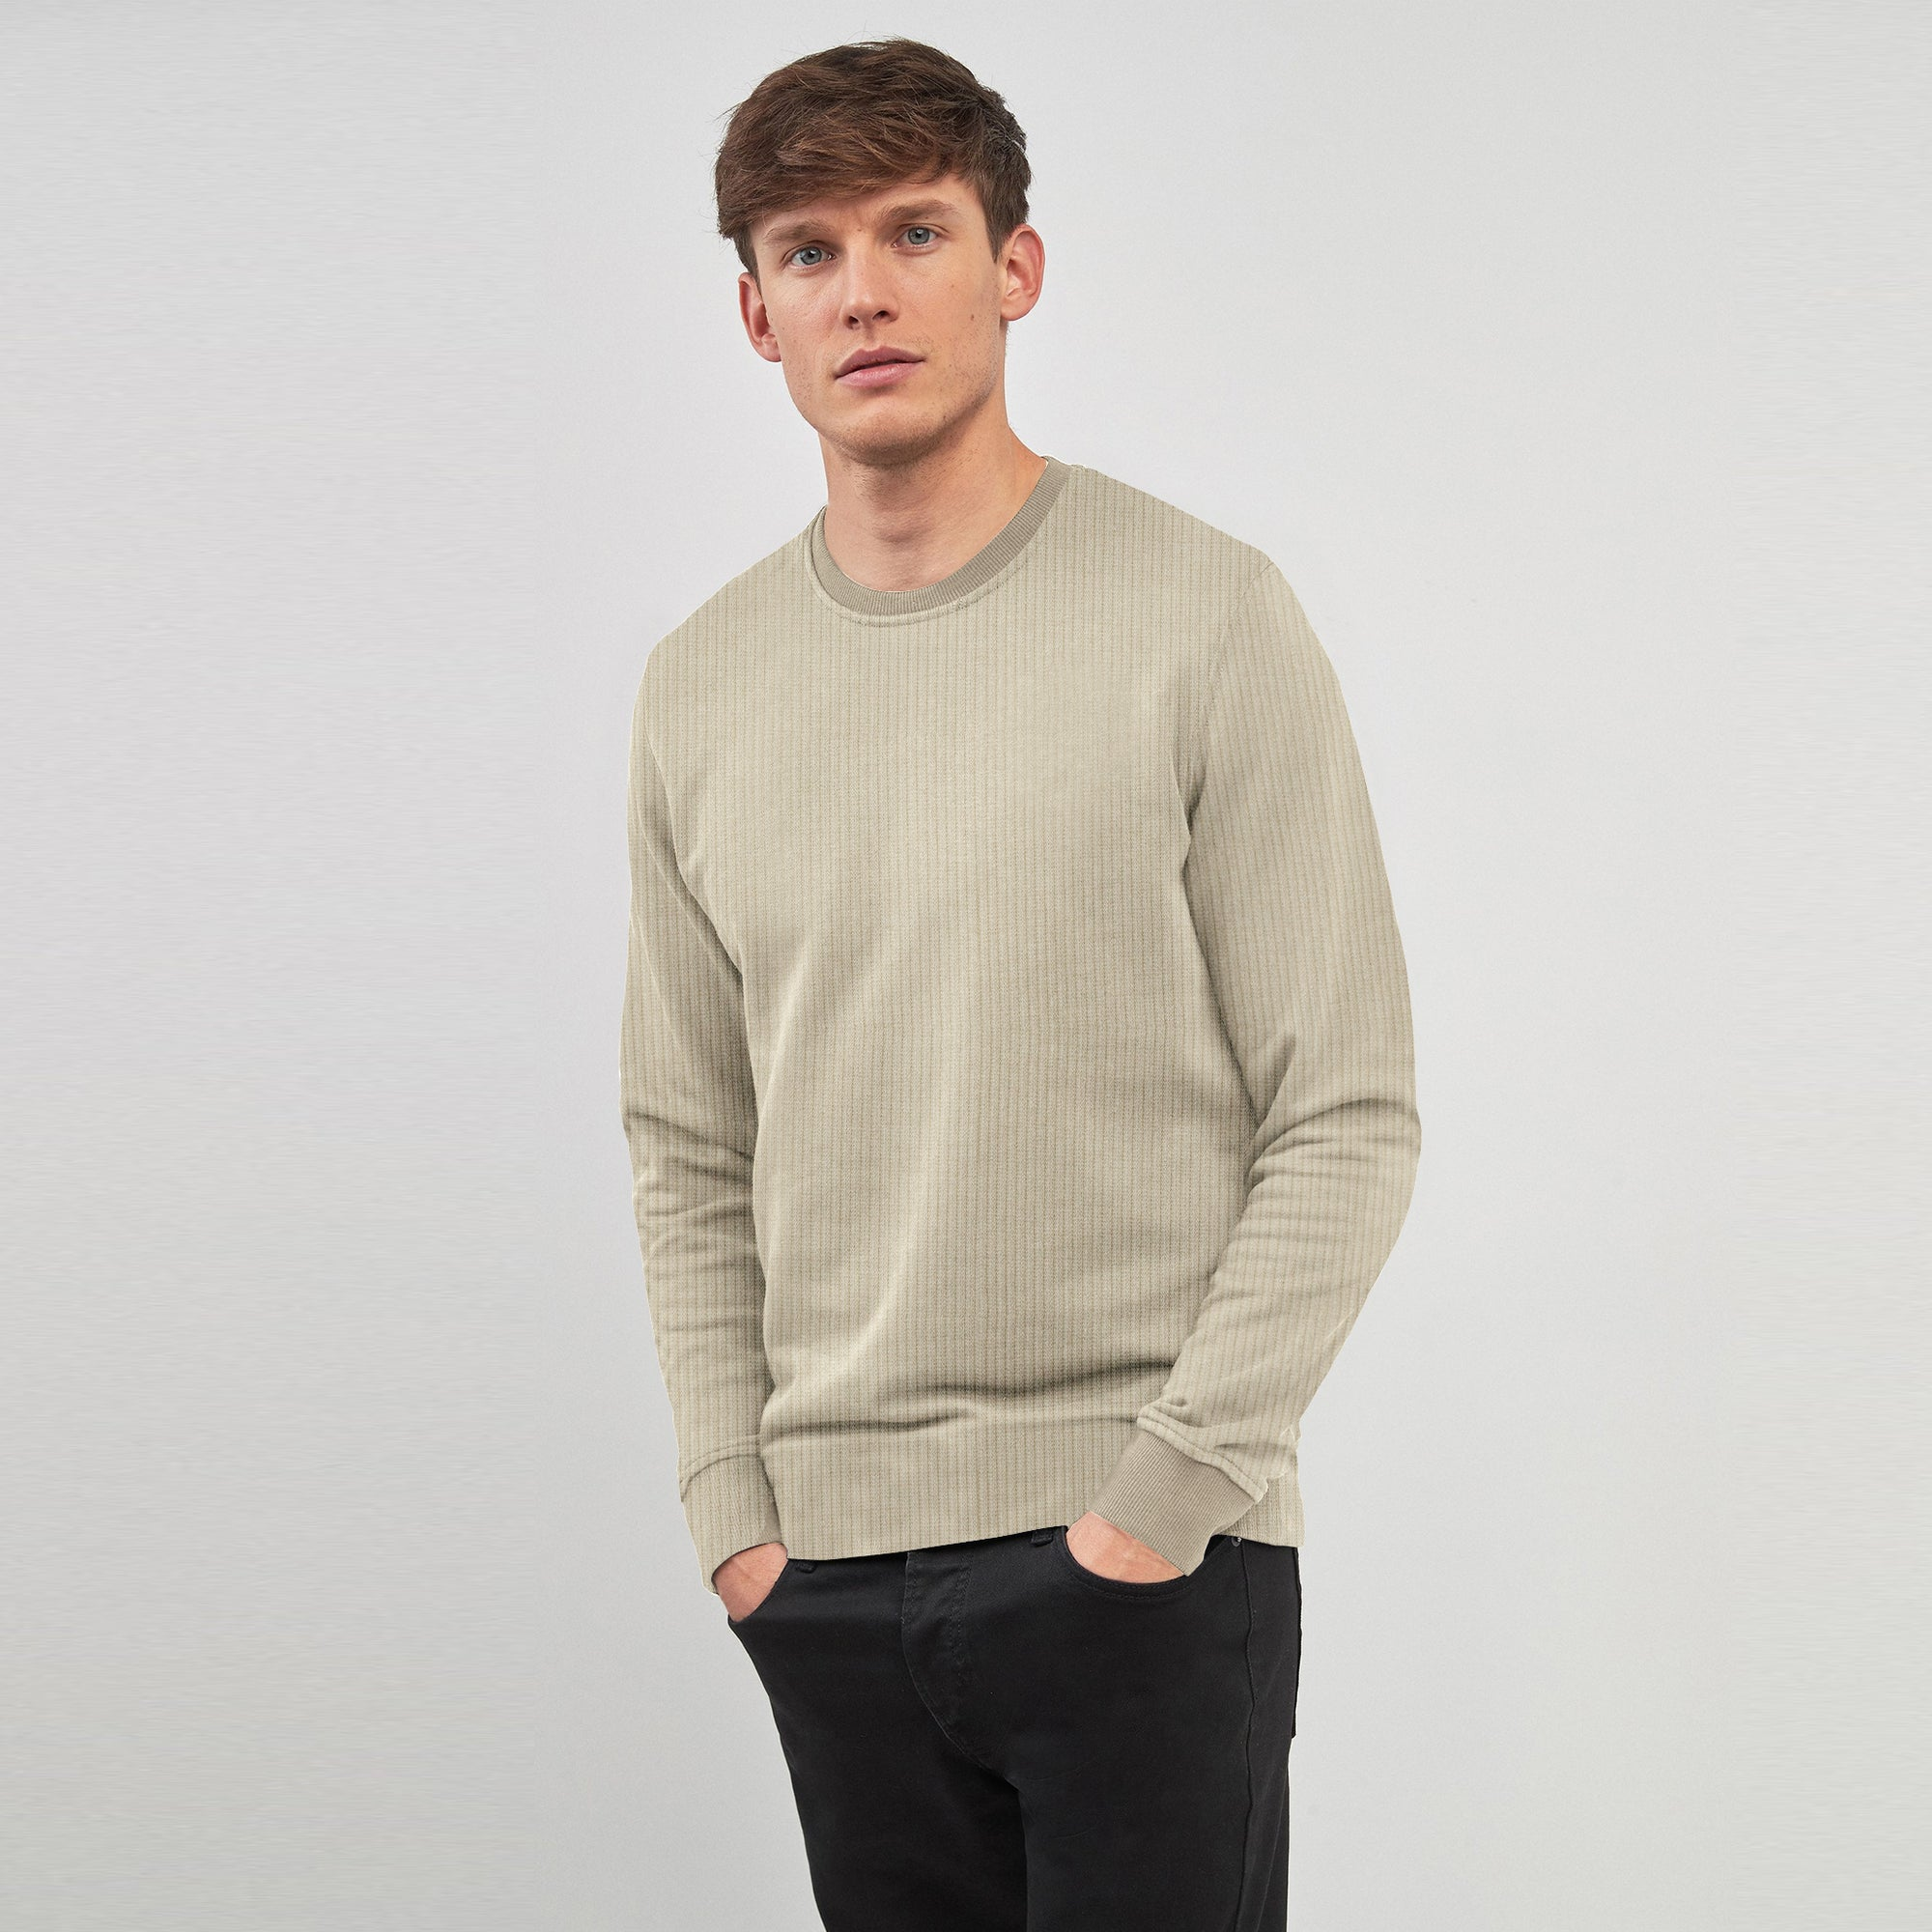 Nyc Polo Crew Neck Thermal Sweatshirt For Men-Camel-SP1336